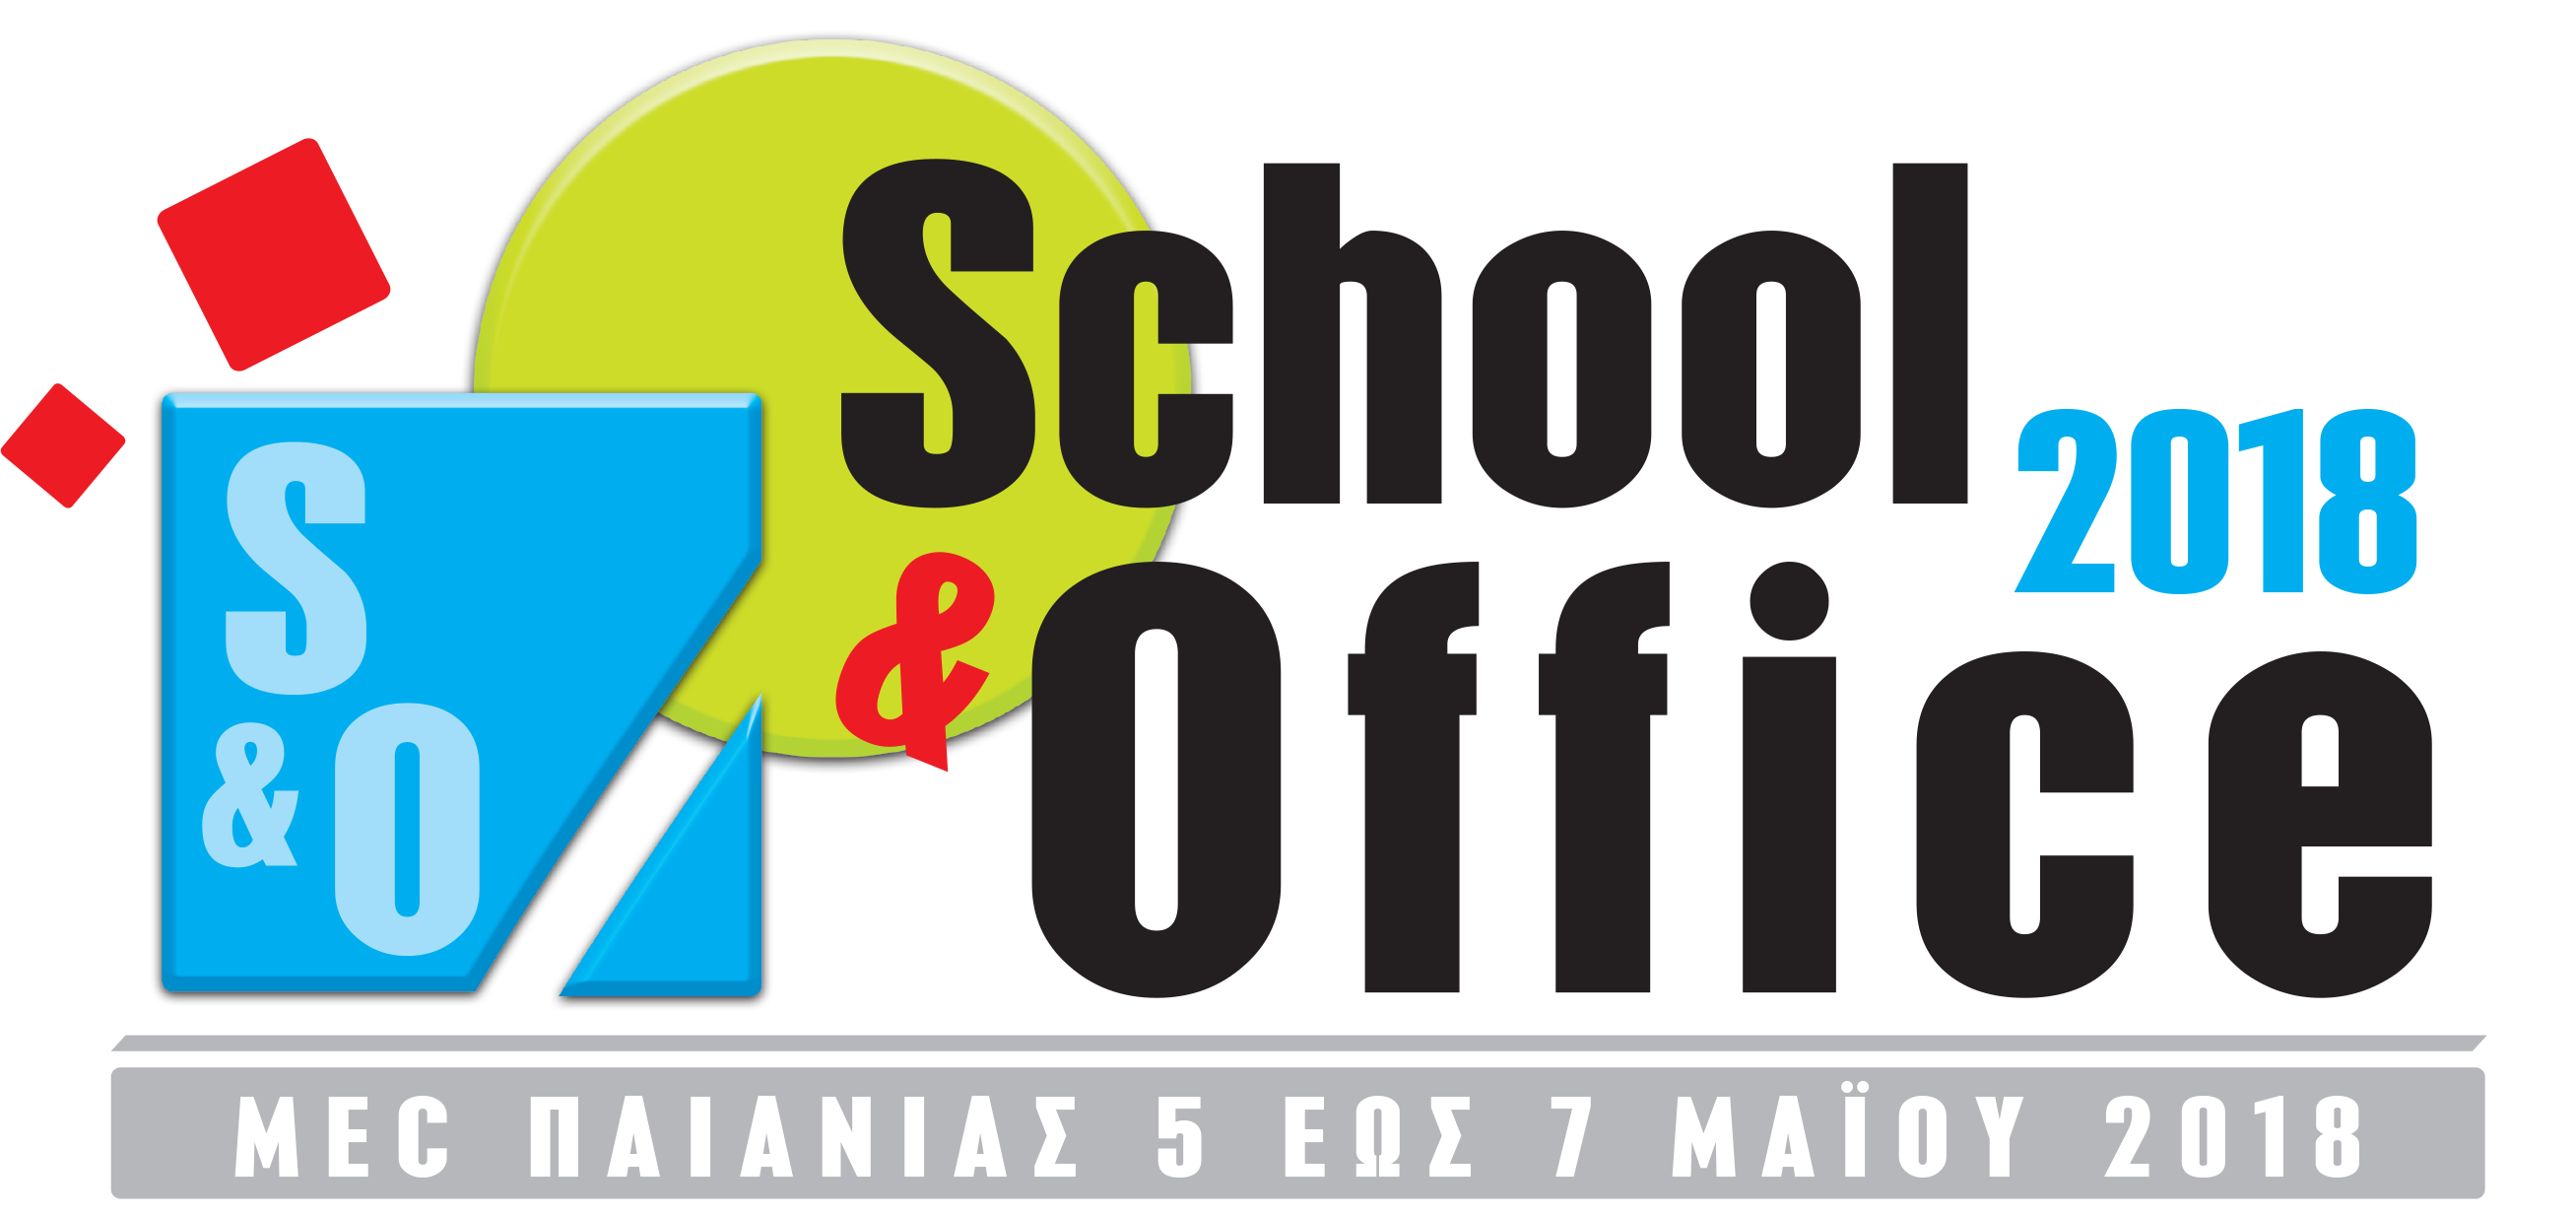 School & Office 2018